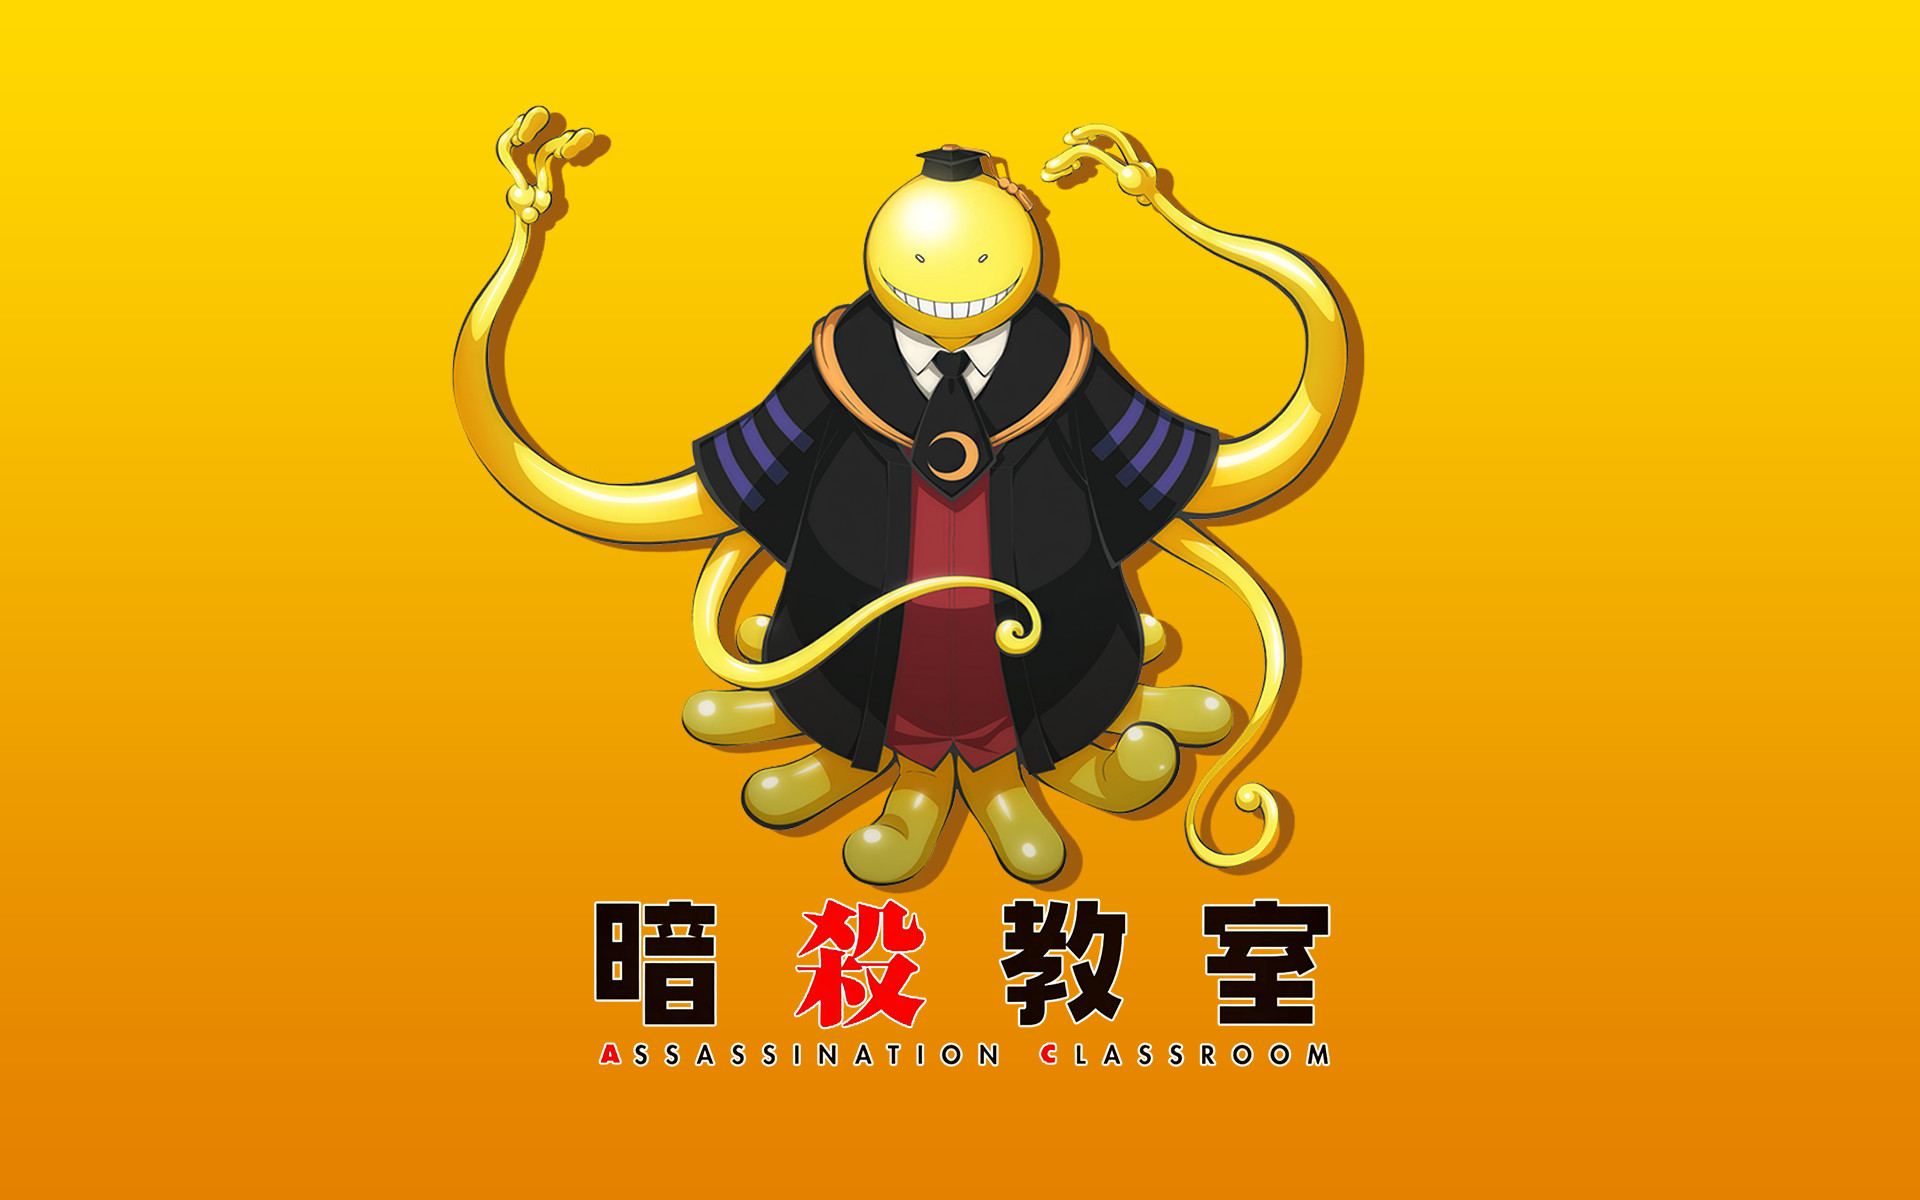 Assassination Classroom HD Wallpapers (86+ images)